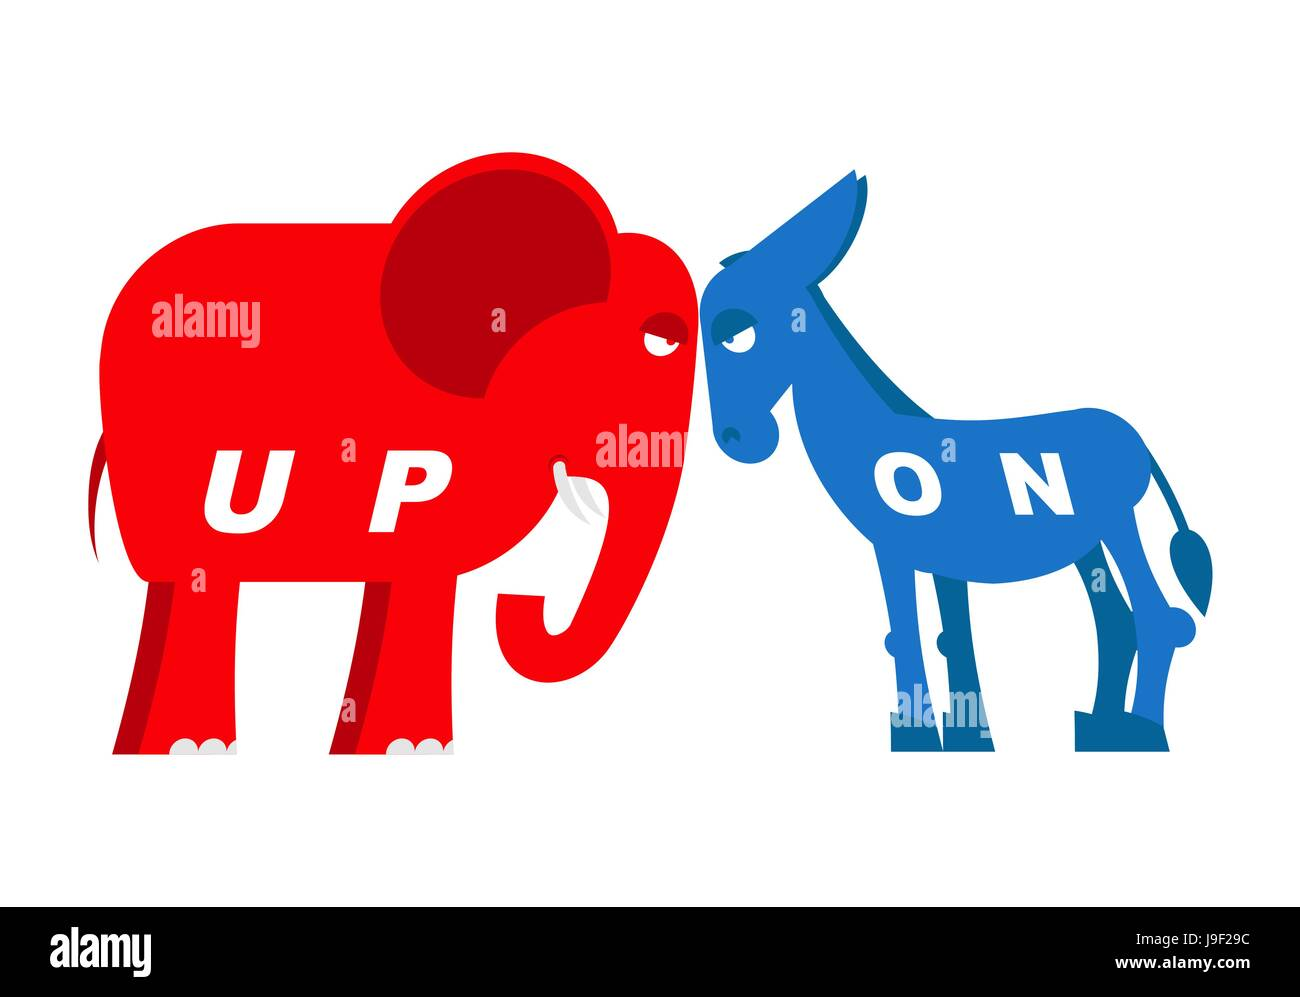 Red elephant and blue donkey symbols of political parties in red elephant and blue donkey symbols of political parties in america democrats against republicans opposition to usa policy symbol of political deb buycottarizona